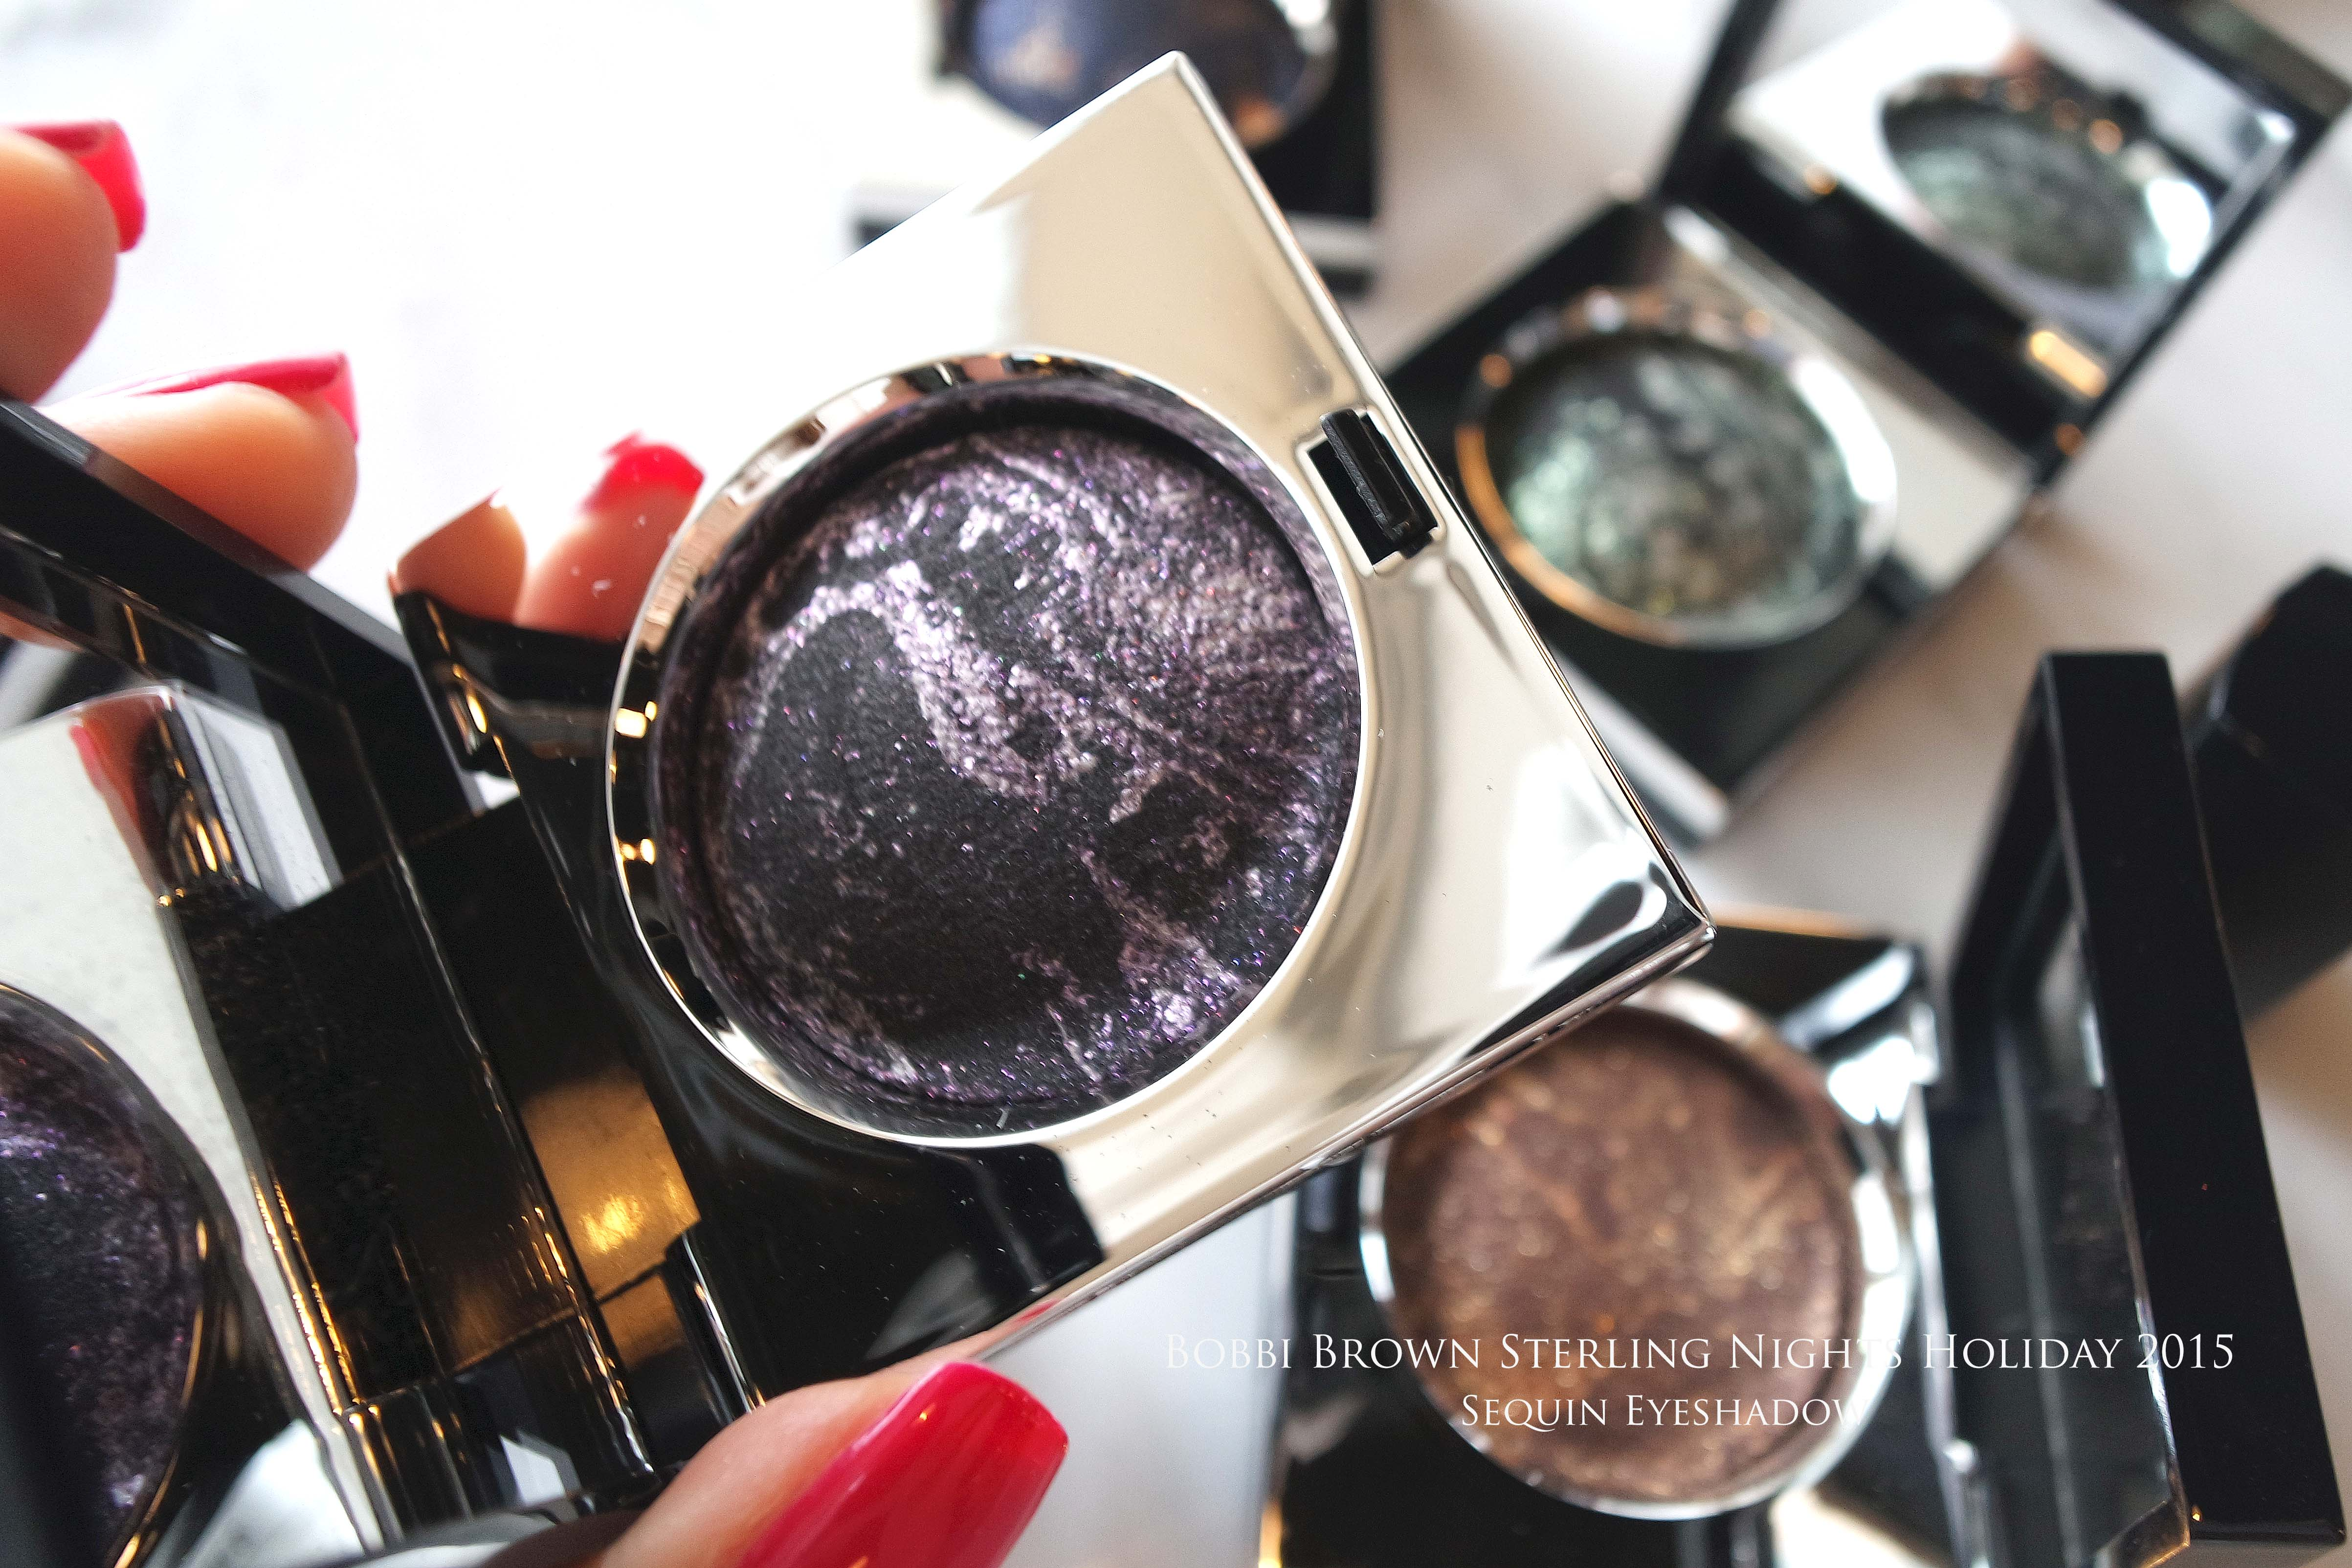 Bobbi Brown Holiday 2015 Preview Collection Photos